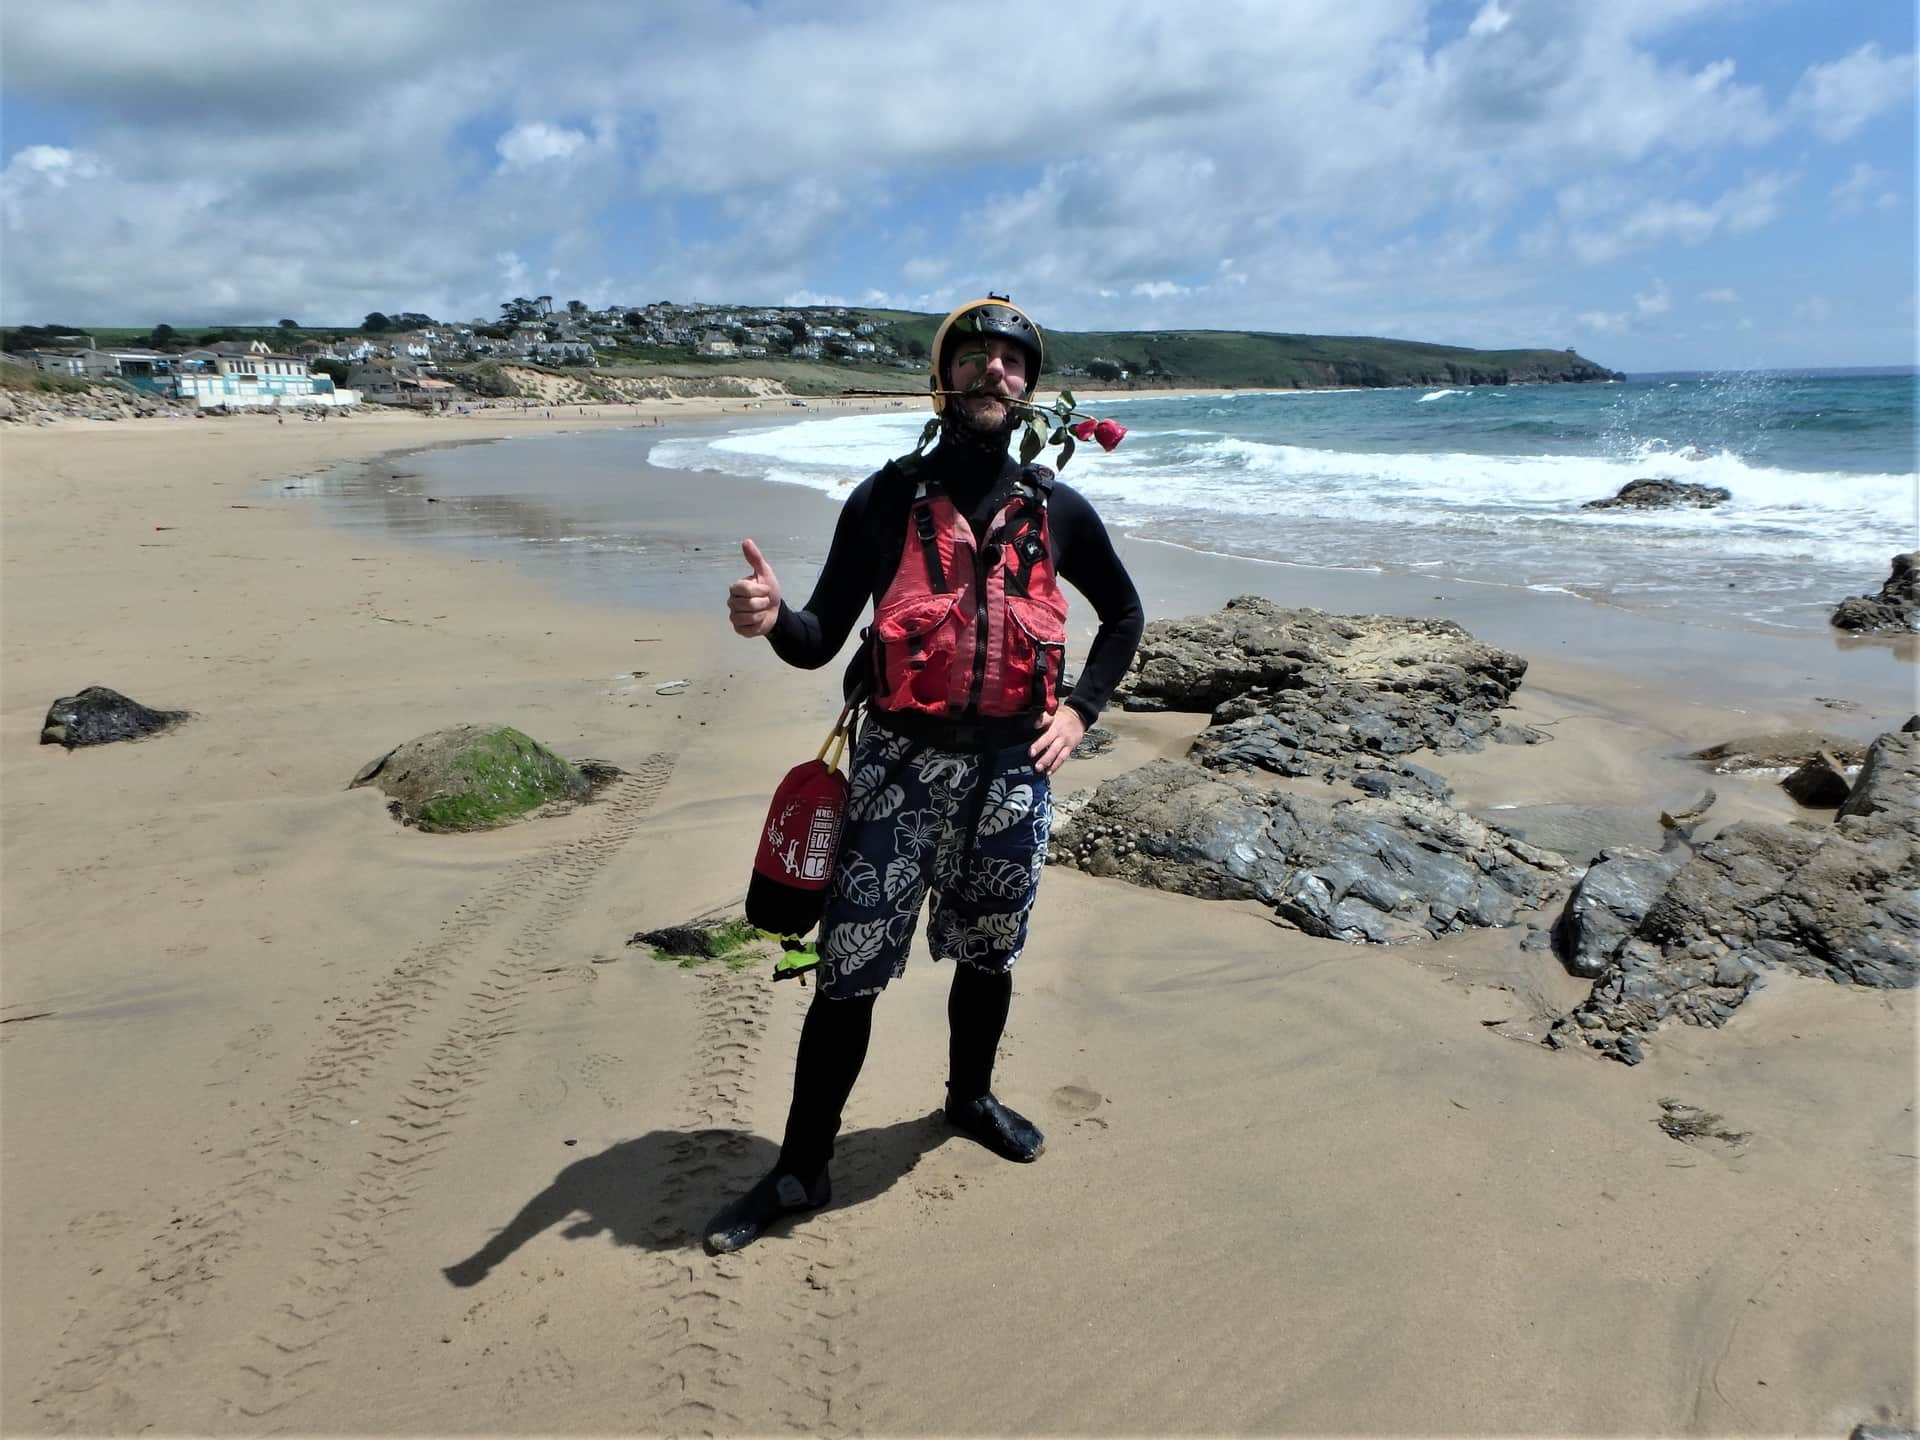 Coasteering guide on beach at Praa sands, Cornwall, ready for a session with Kernow Coasteering